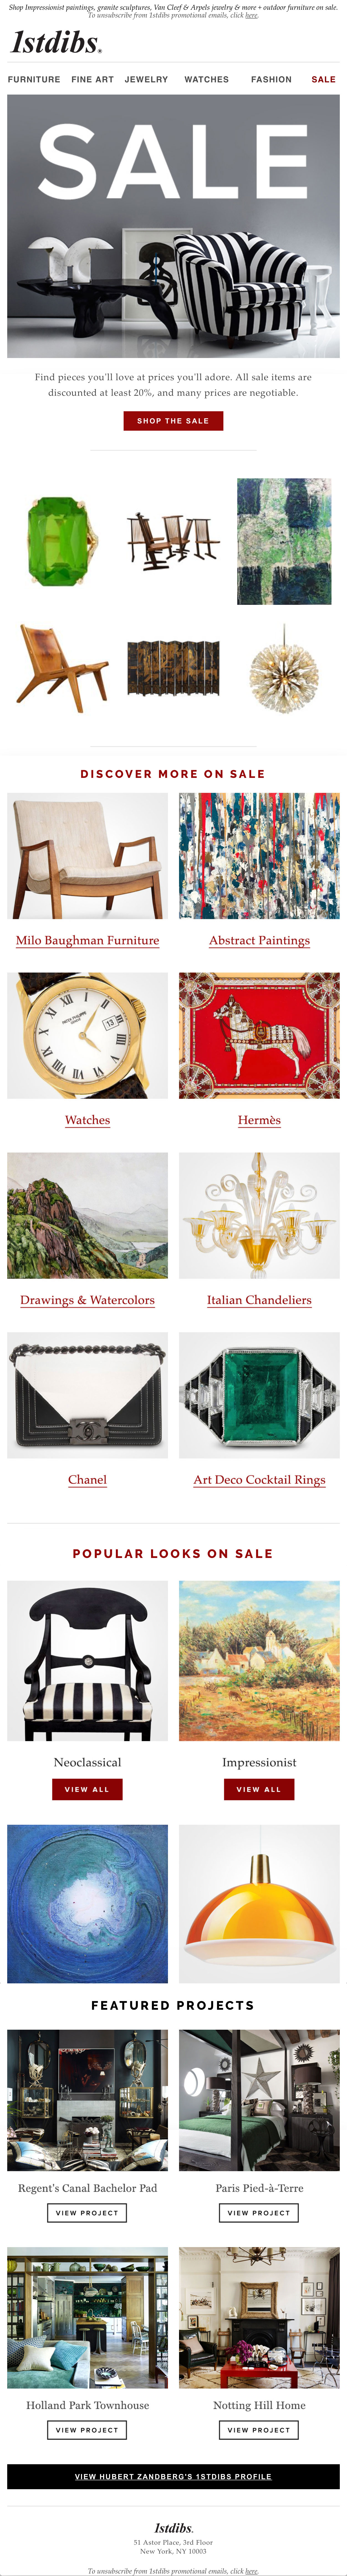 lilacgallery-1stdibs+'Dripping+Dots,+Havana+II'+by+Cindy+Shaoul+on+Newsletter.jpg